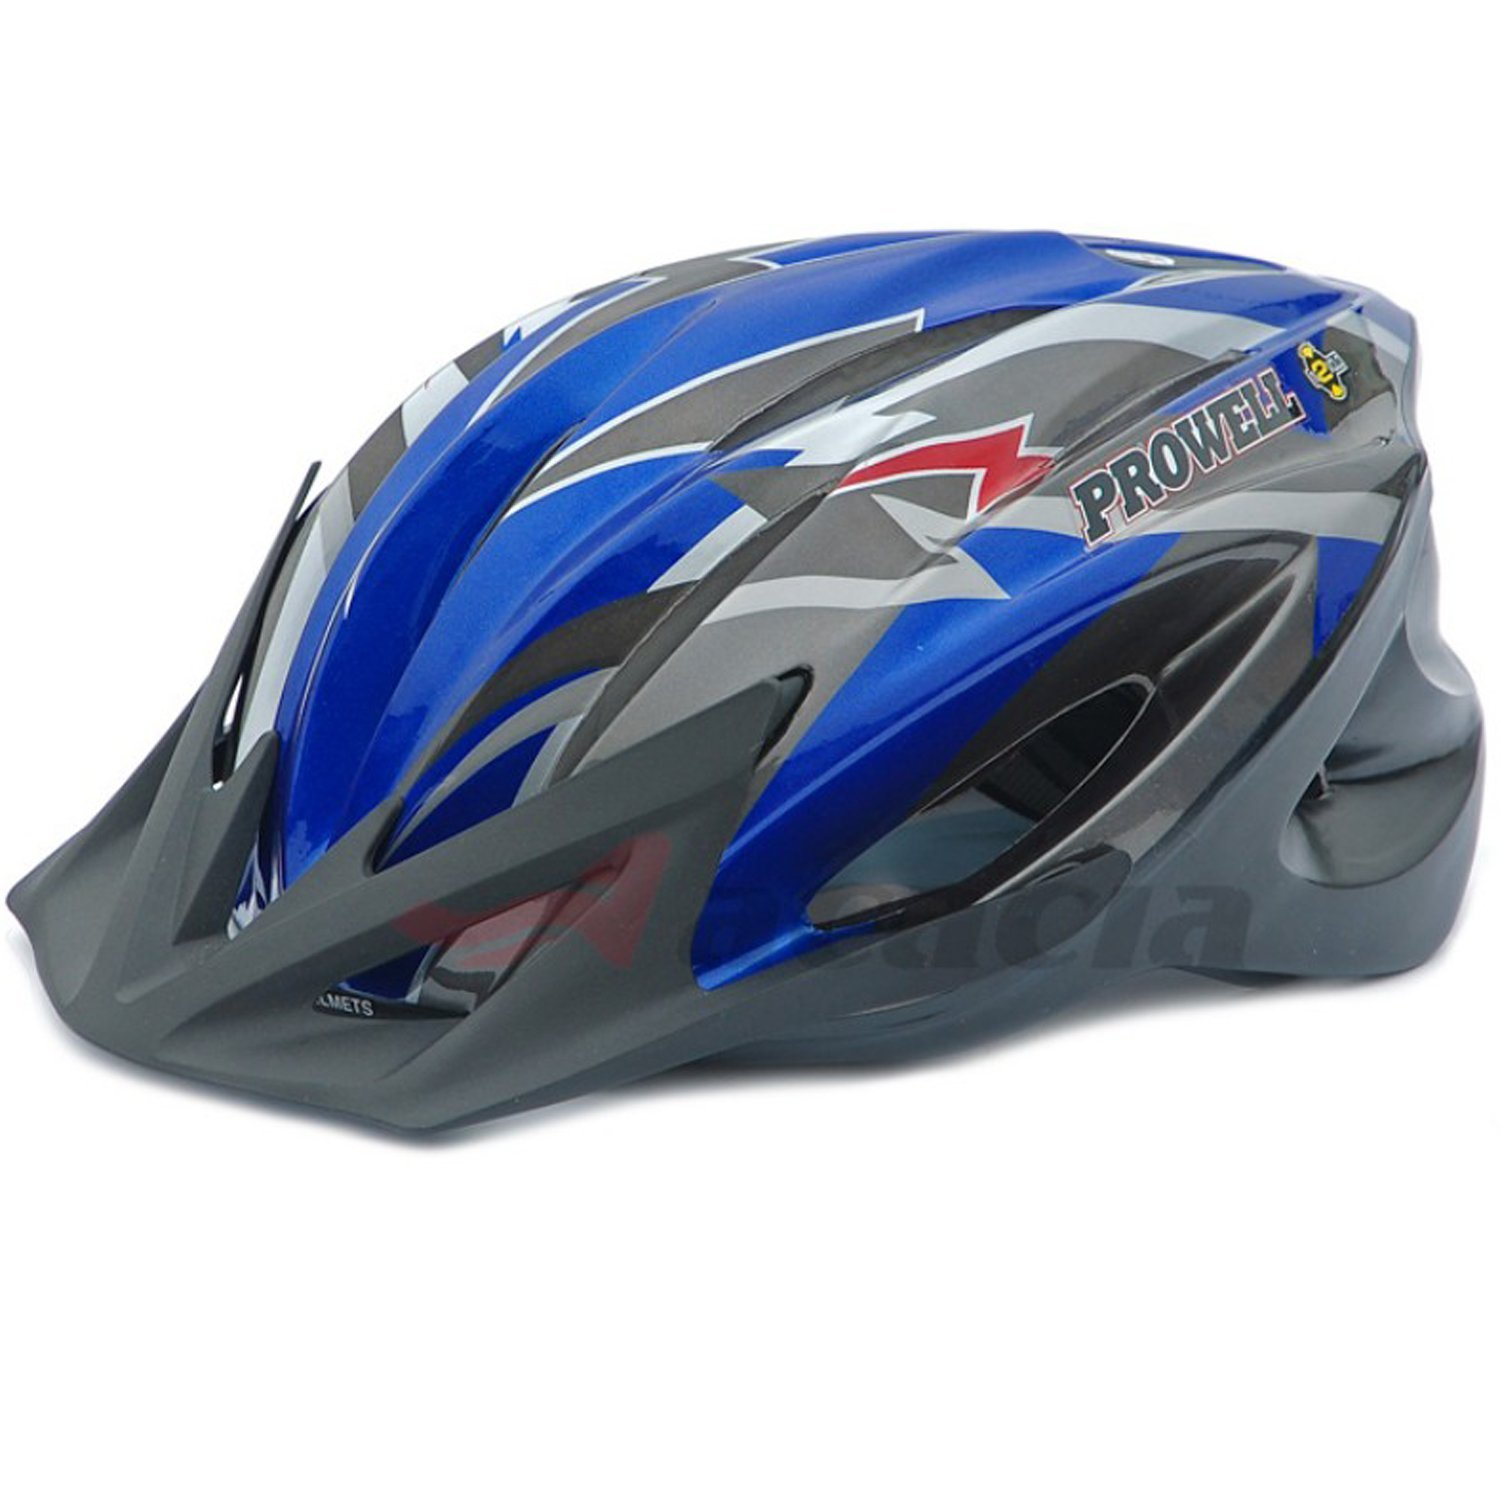 Blue Maysu Bicycle Helmets